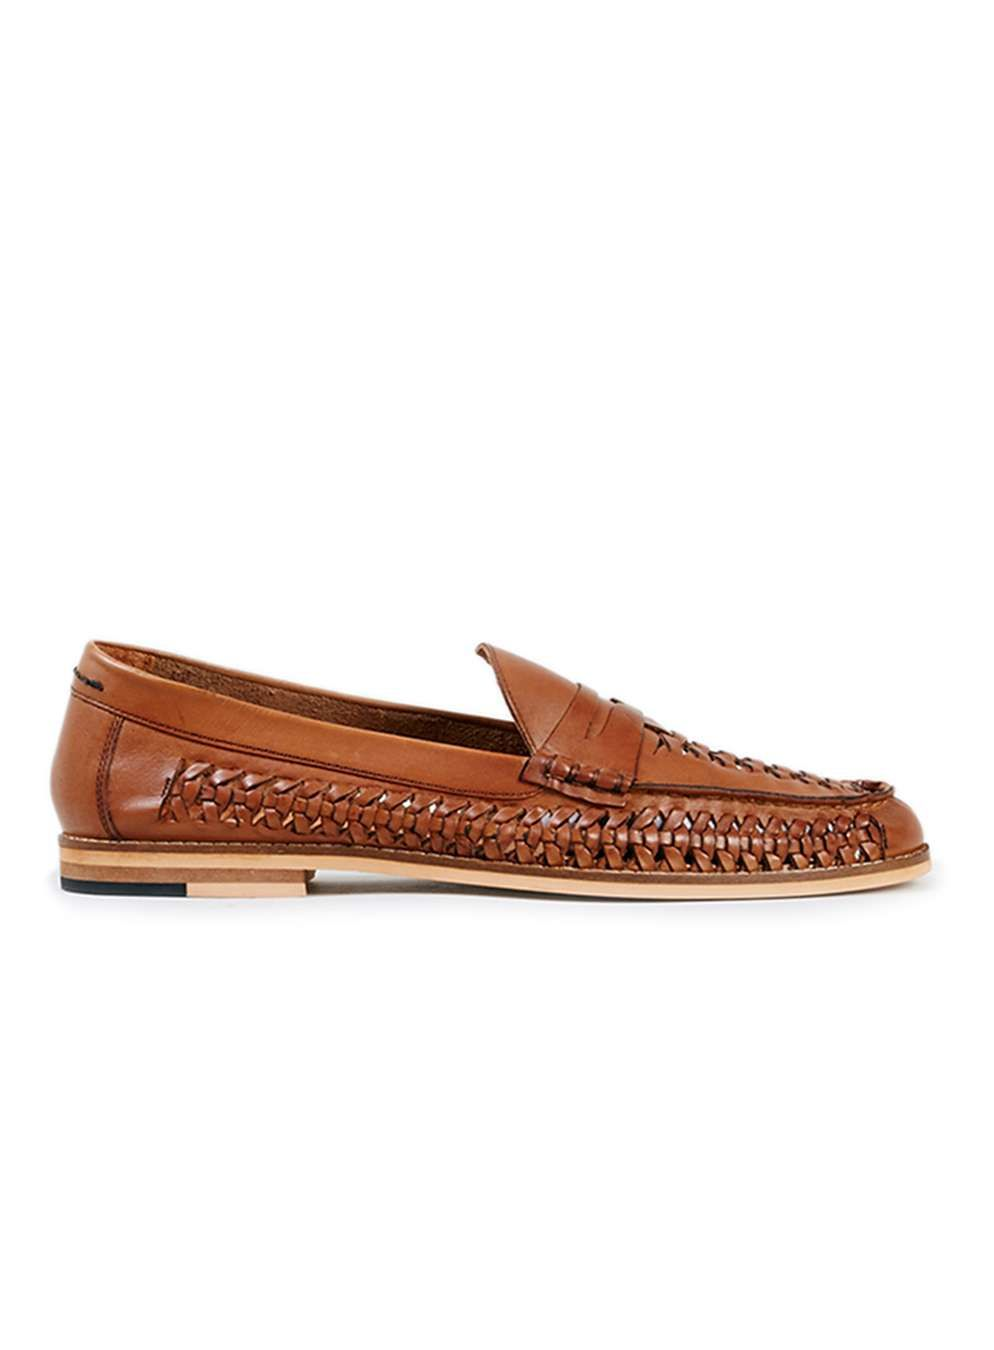 MARNE Tan Leather Woven Loafers - Men's Casual Shoes - Shoes & Accessories